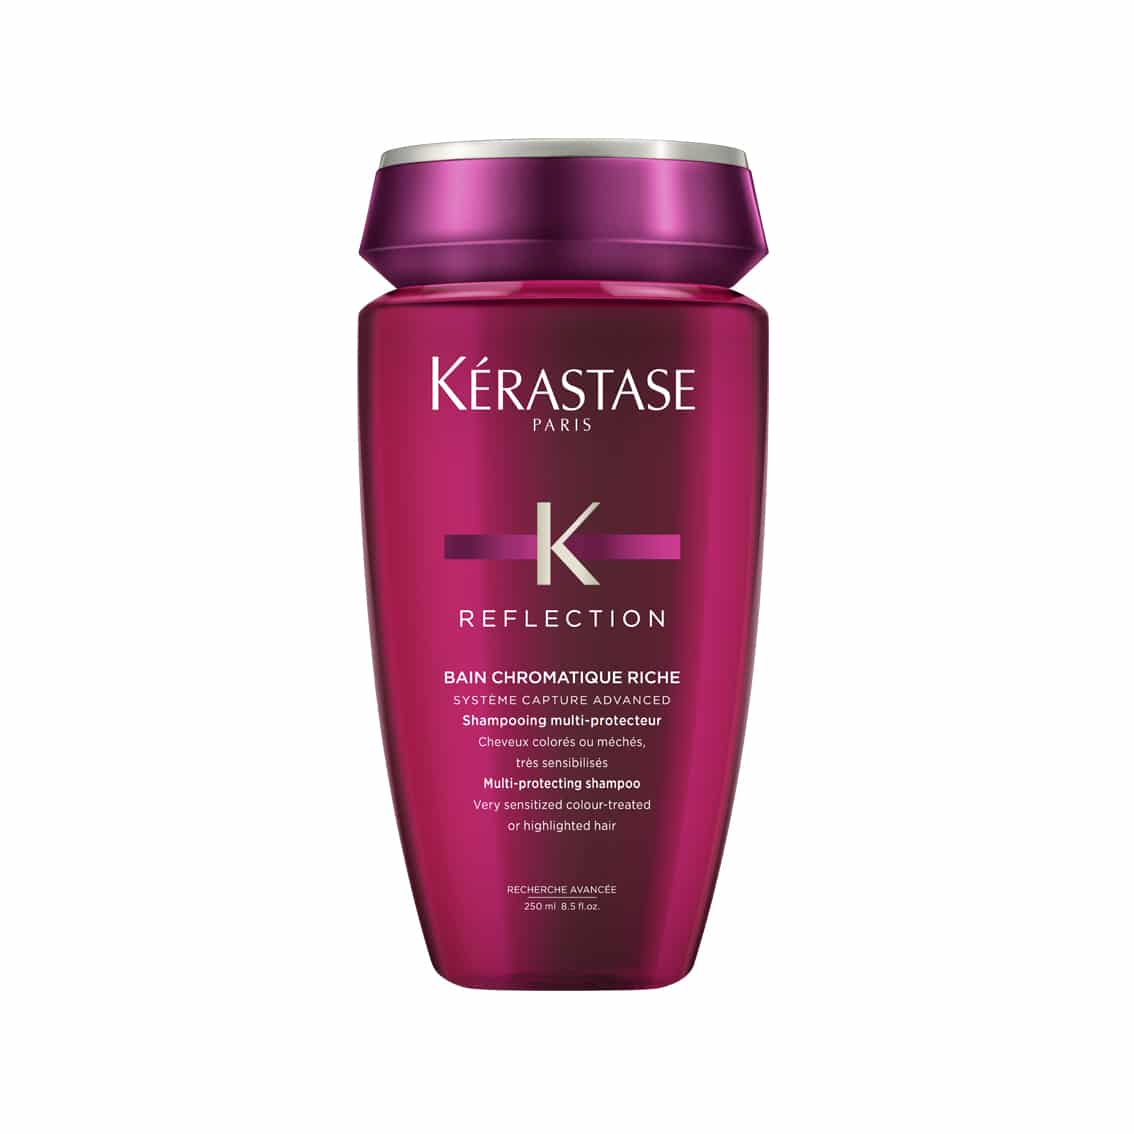 Bain Chromatique Riche Réflection Kerastase | TuChampú